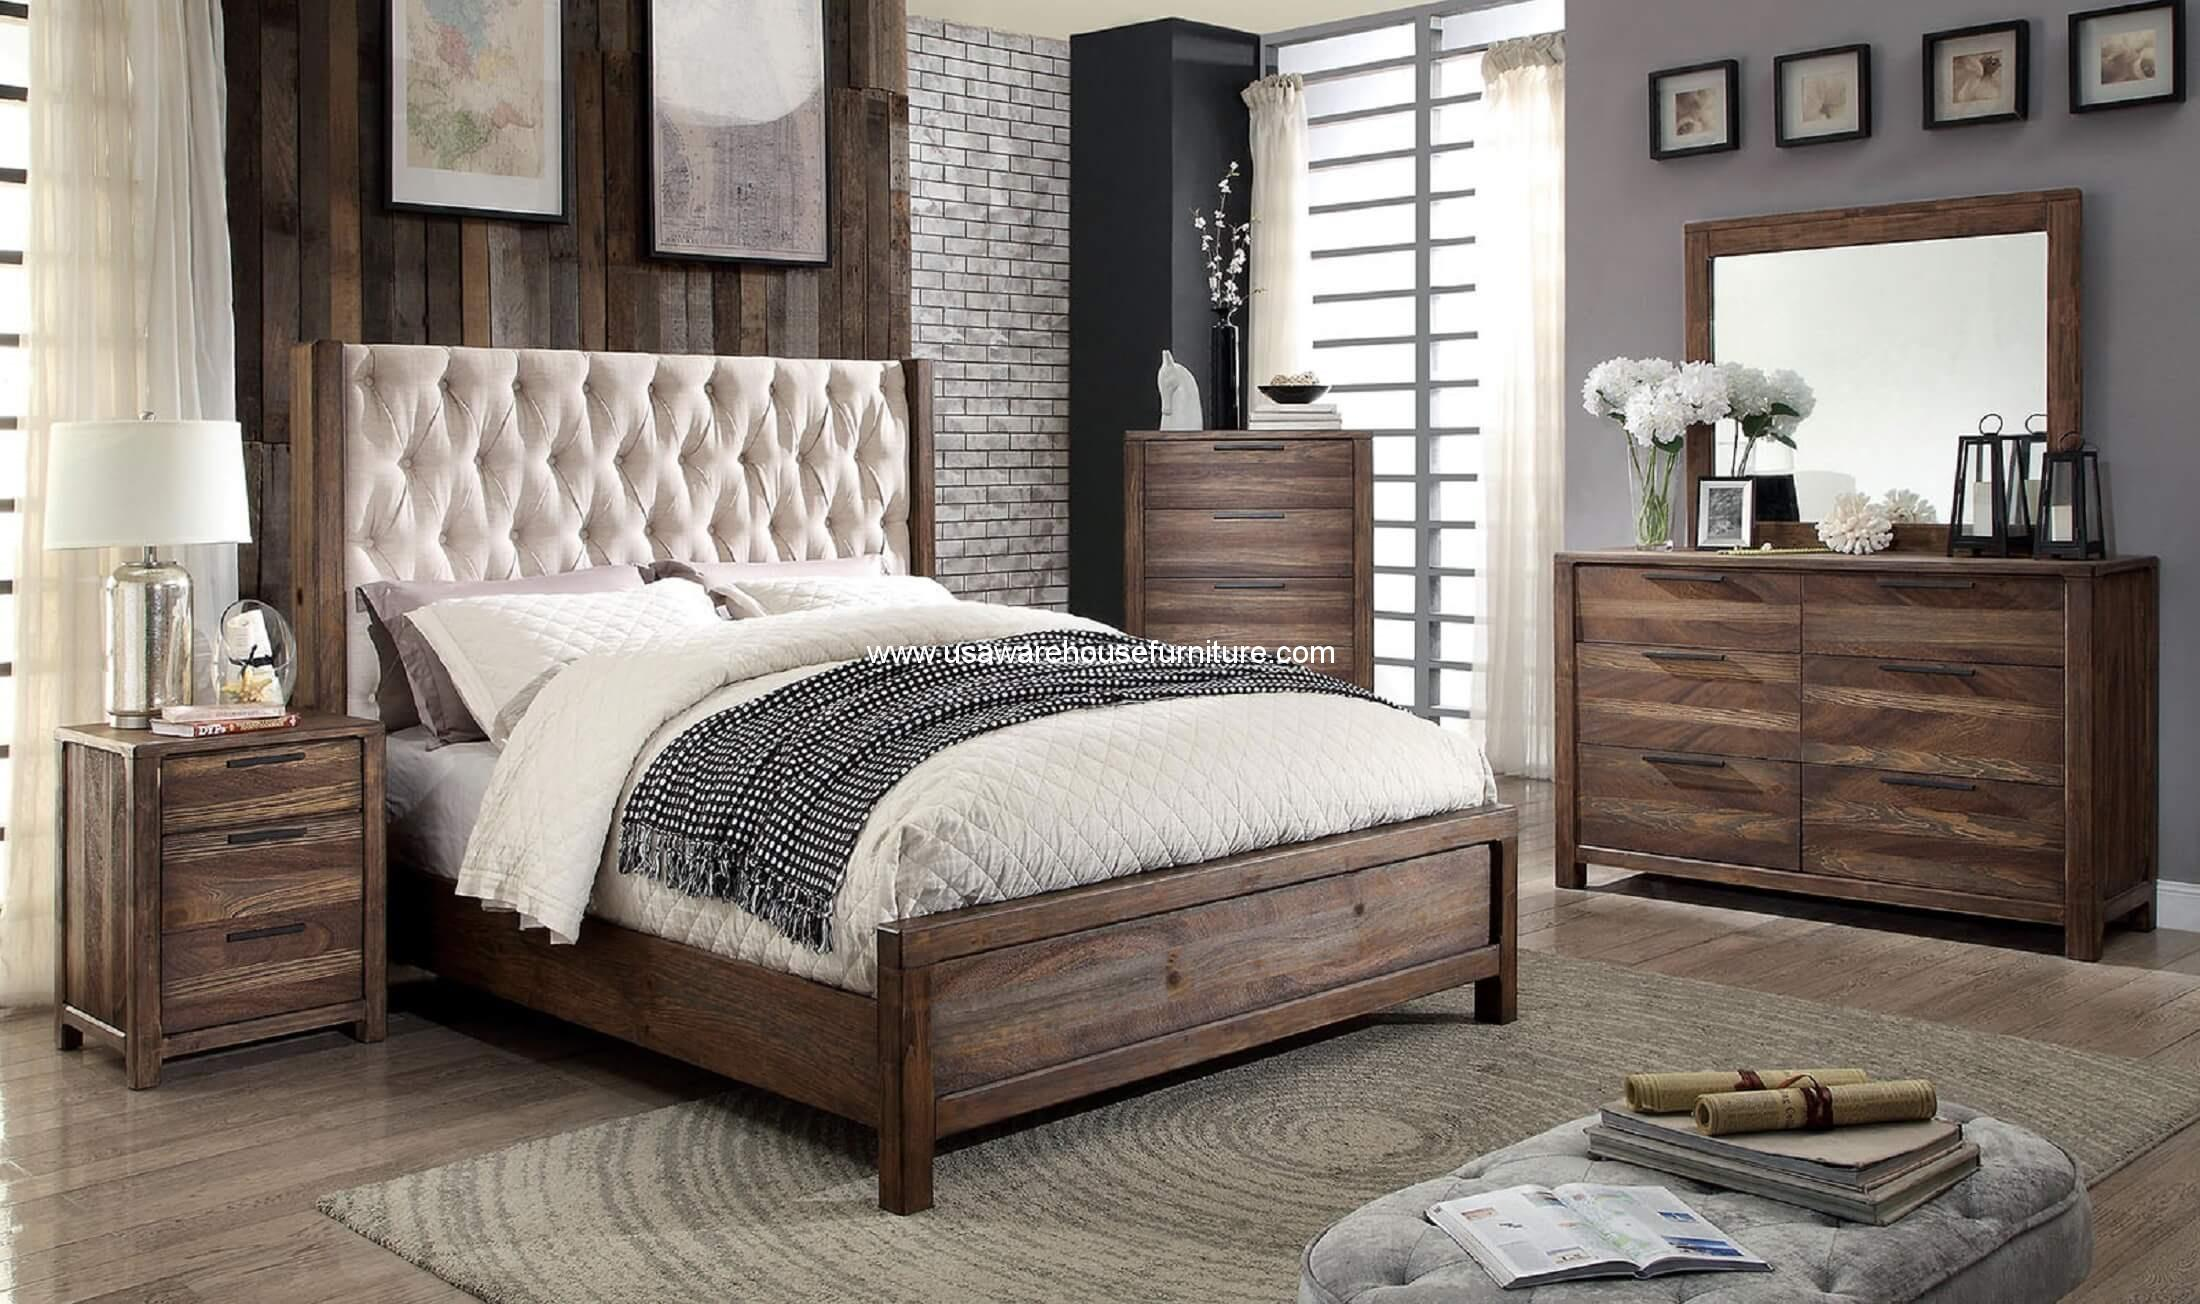 4 Piece Hutchinson Bedroom Set Rustic Natural Tone Finish Usa Warehouse Furniture